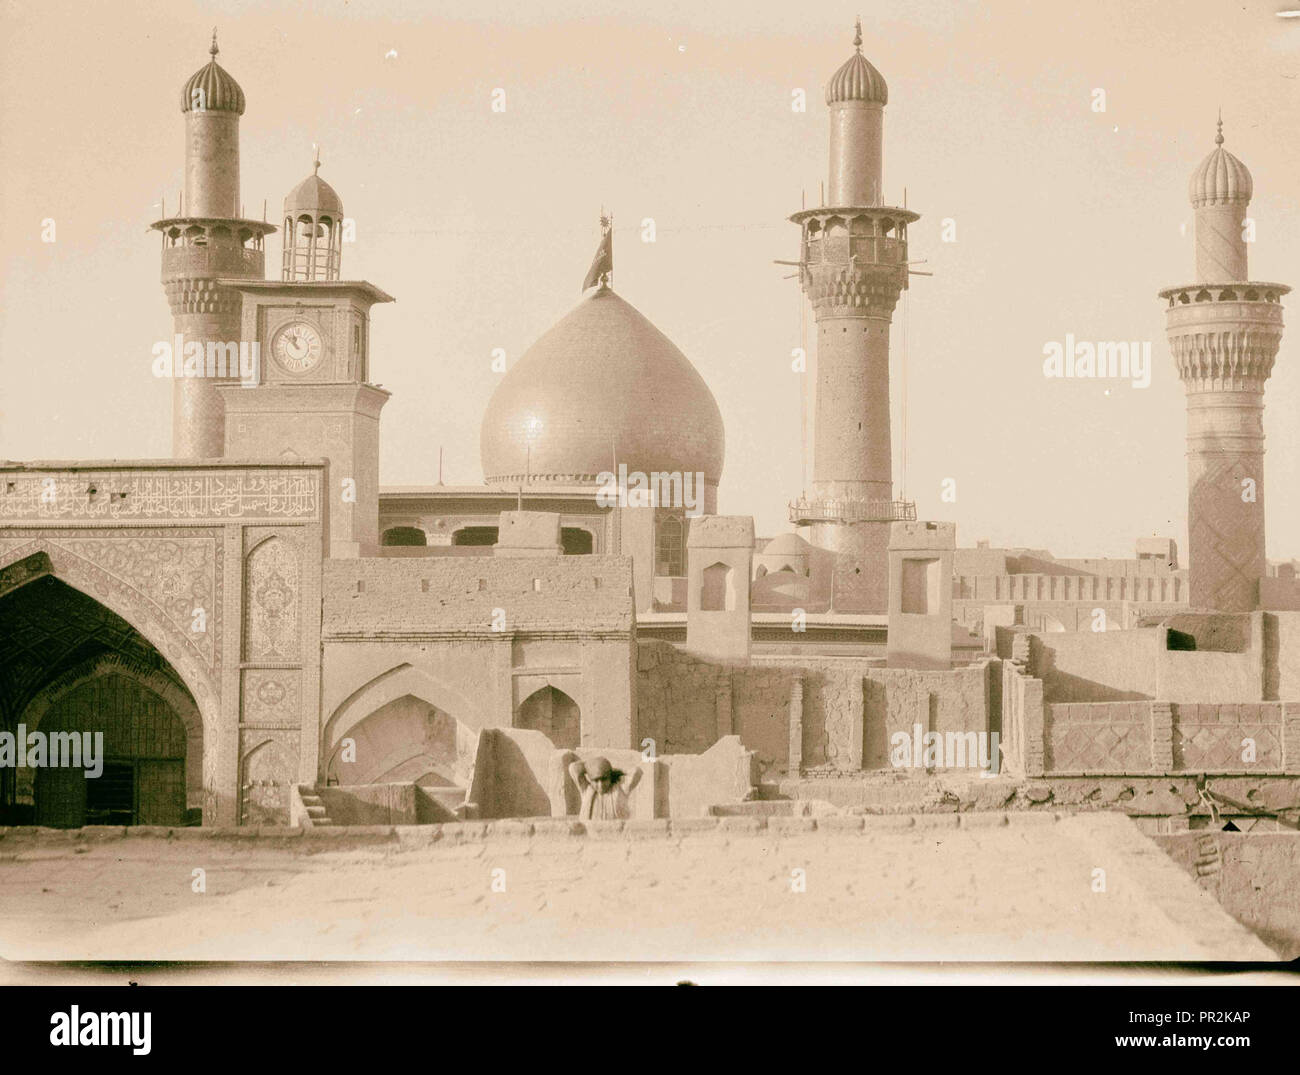 Iraq. Kerbela. Second holy city of the Shiite Moslems [i.e., Muslims]. The great mosque with dome and minarets overlaid with - Stock Image